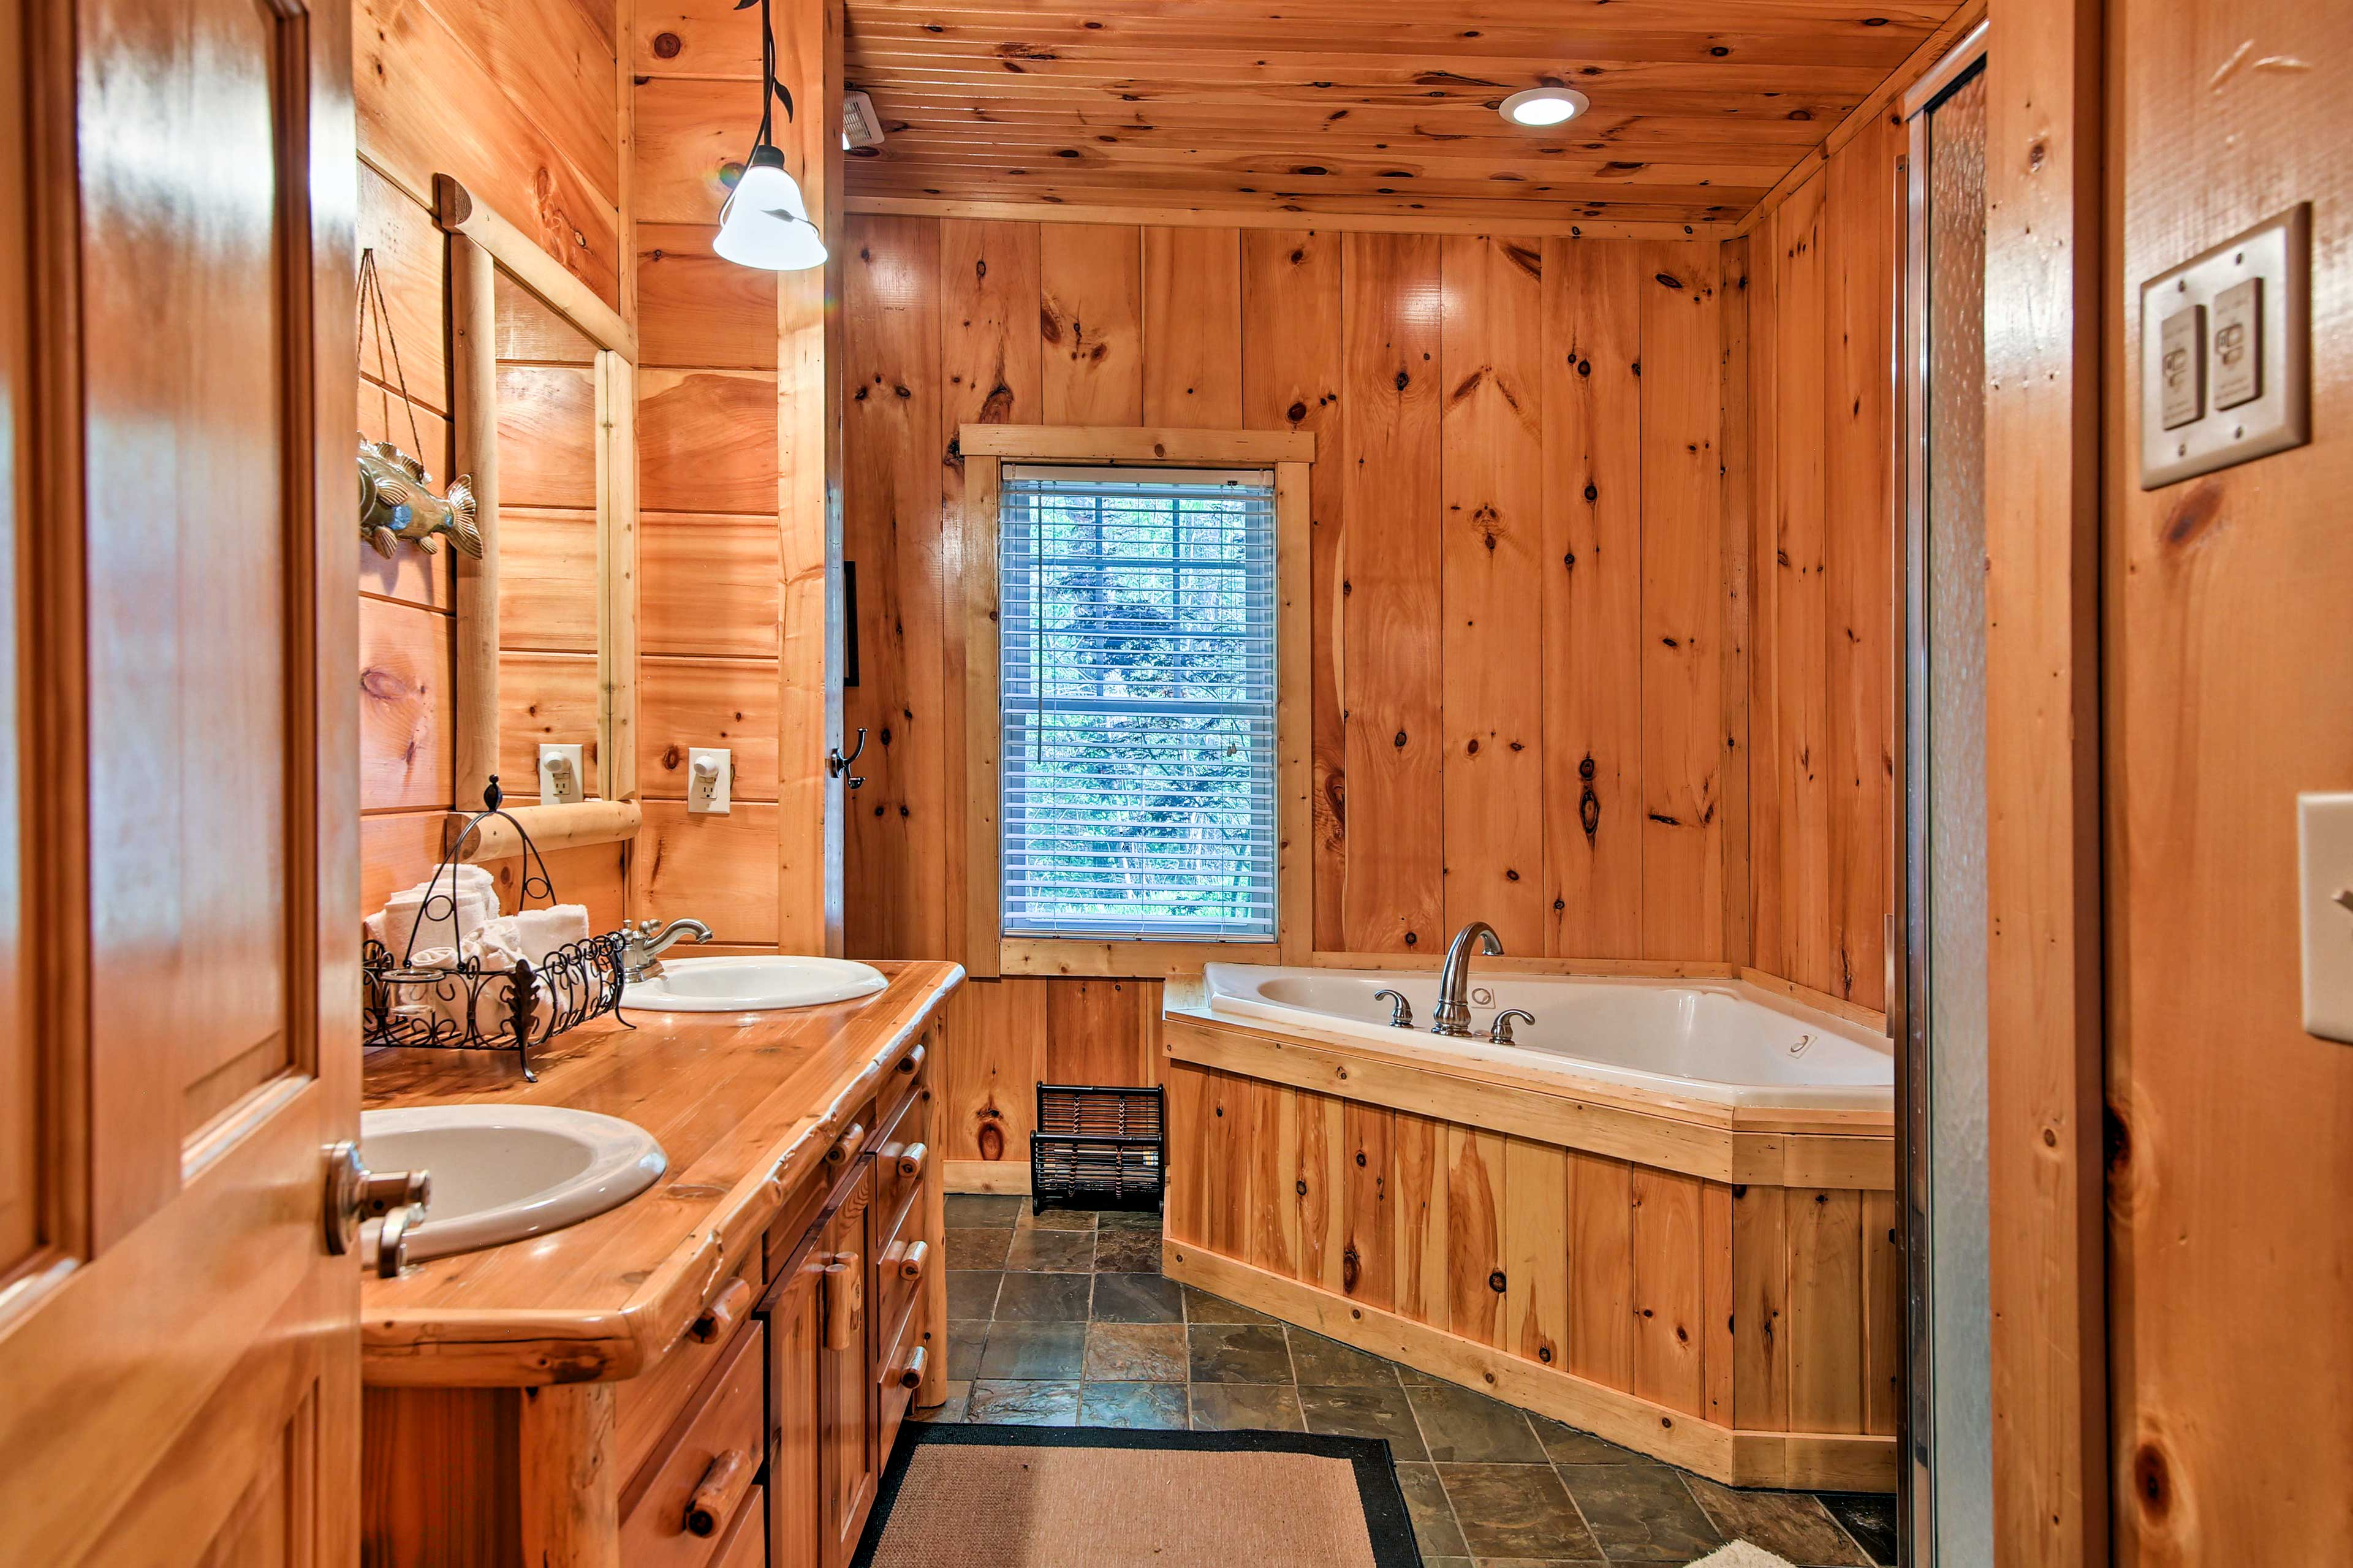 Take a relaxing soak in the master bathroom's Jacuzzi tub.